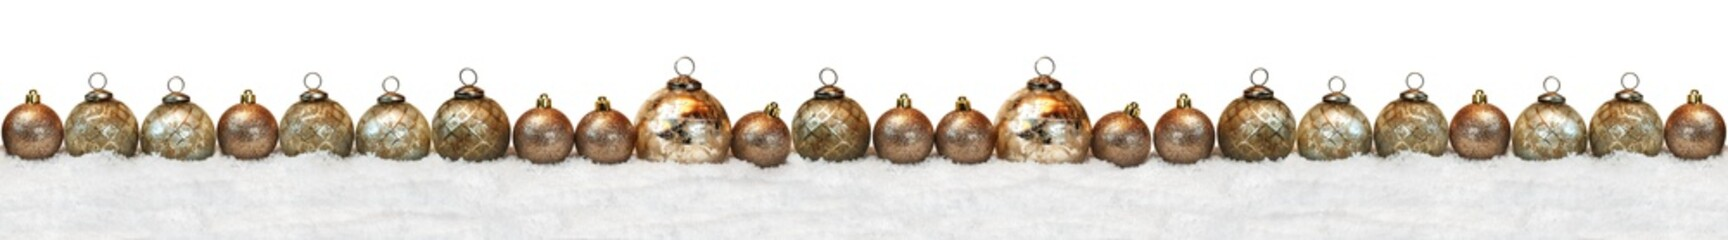 Long chain of golden christmas balls in the snow